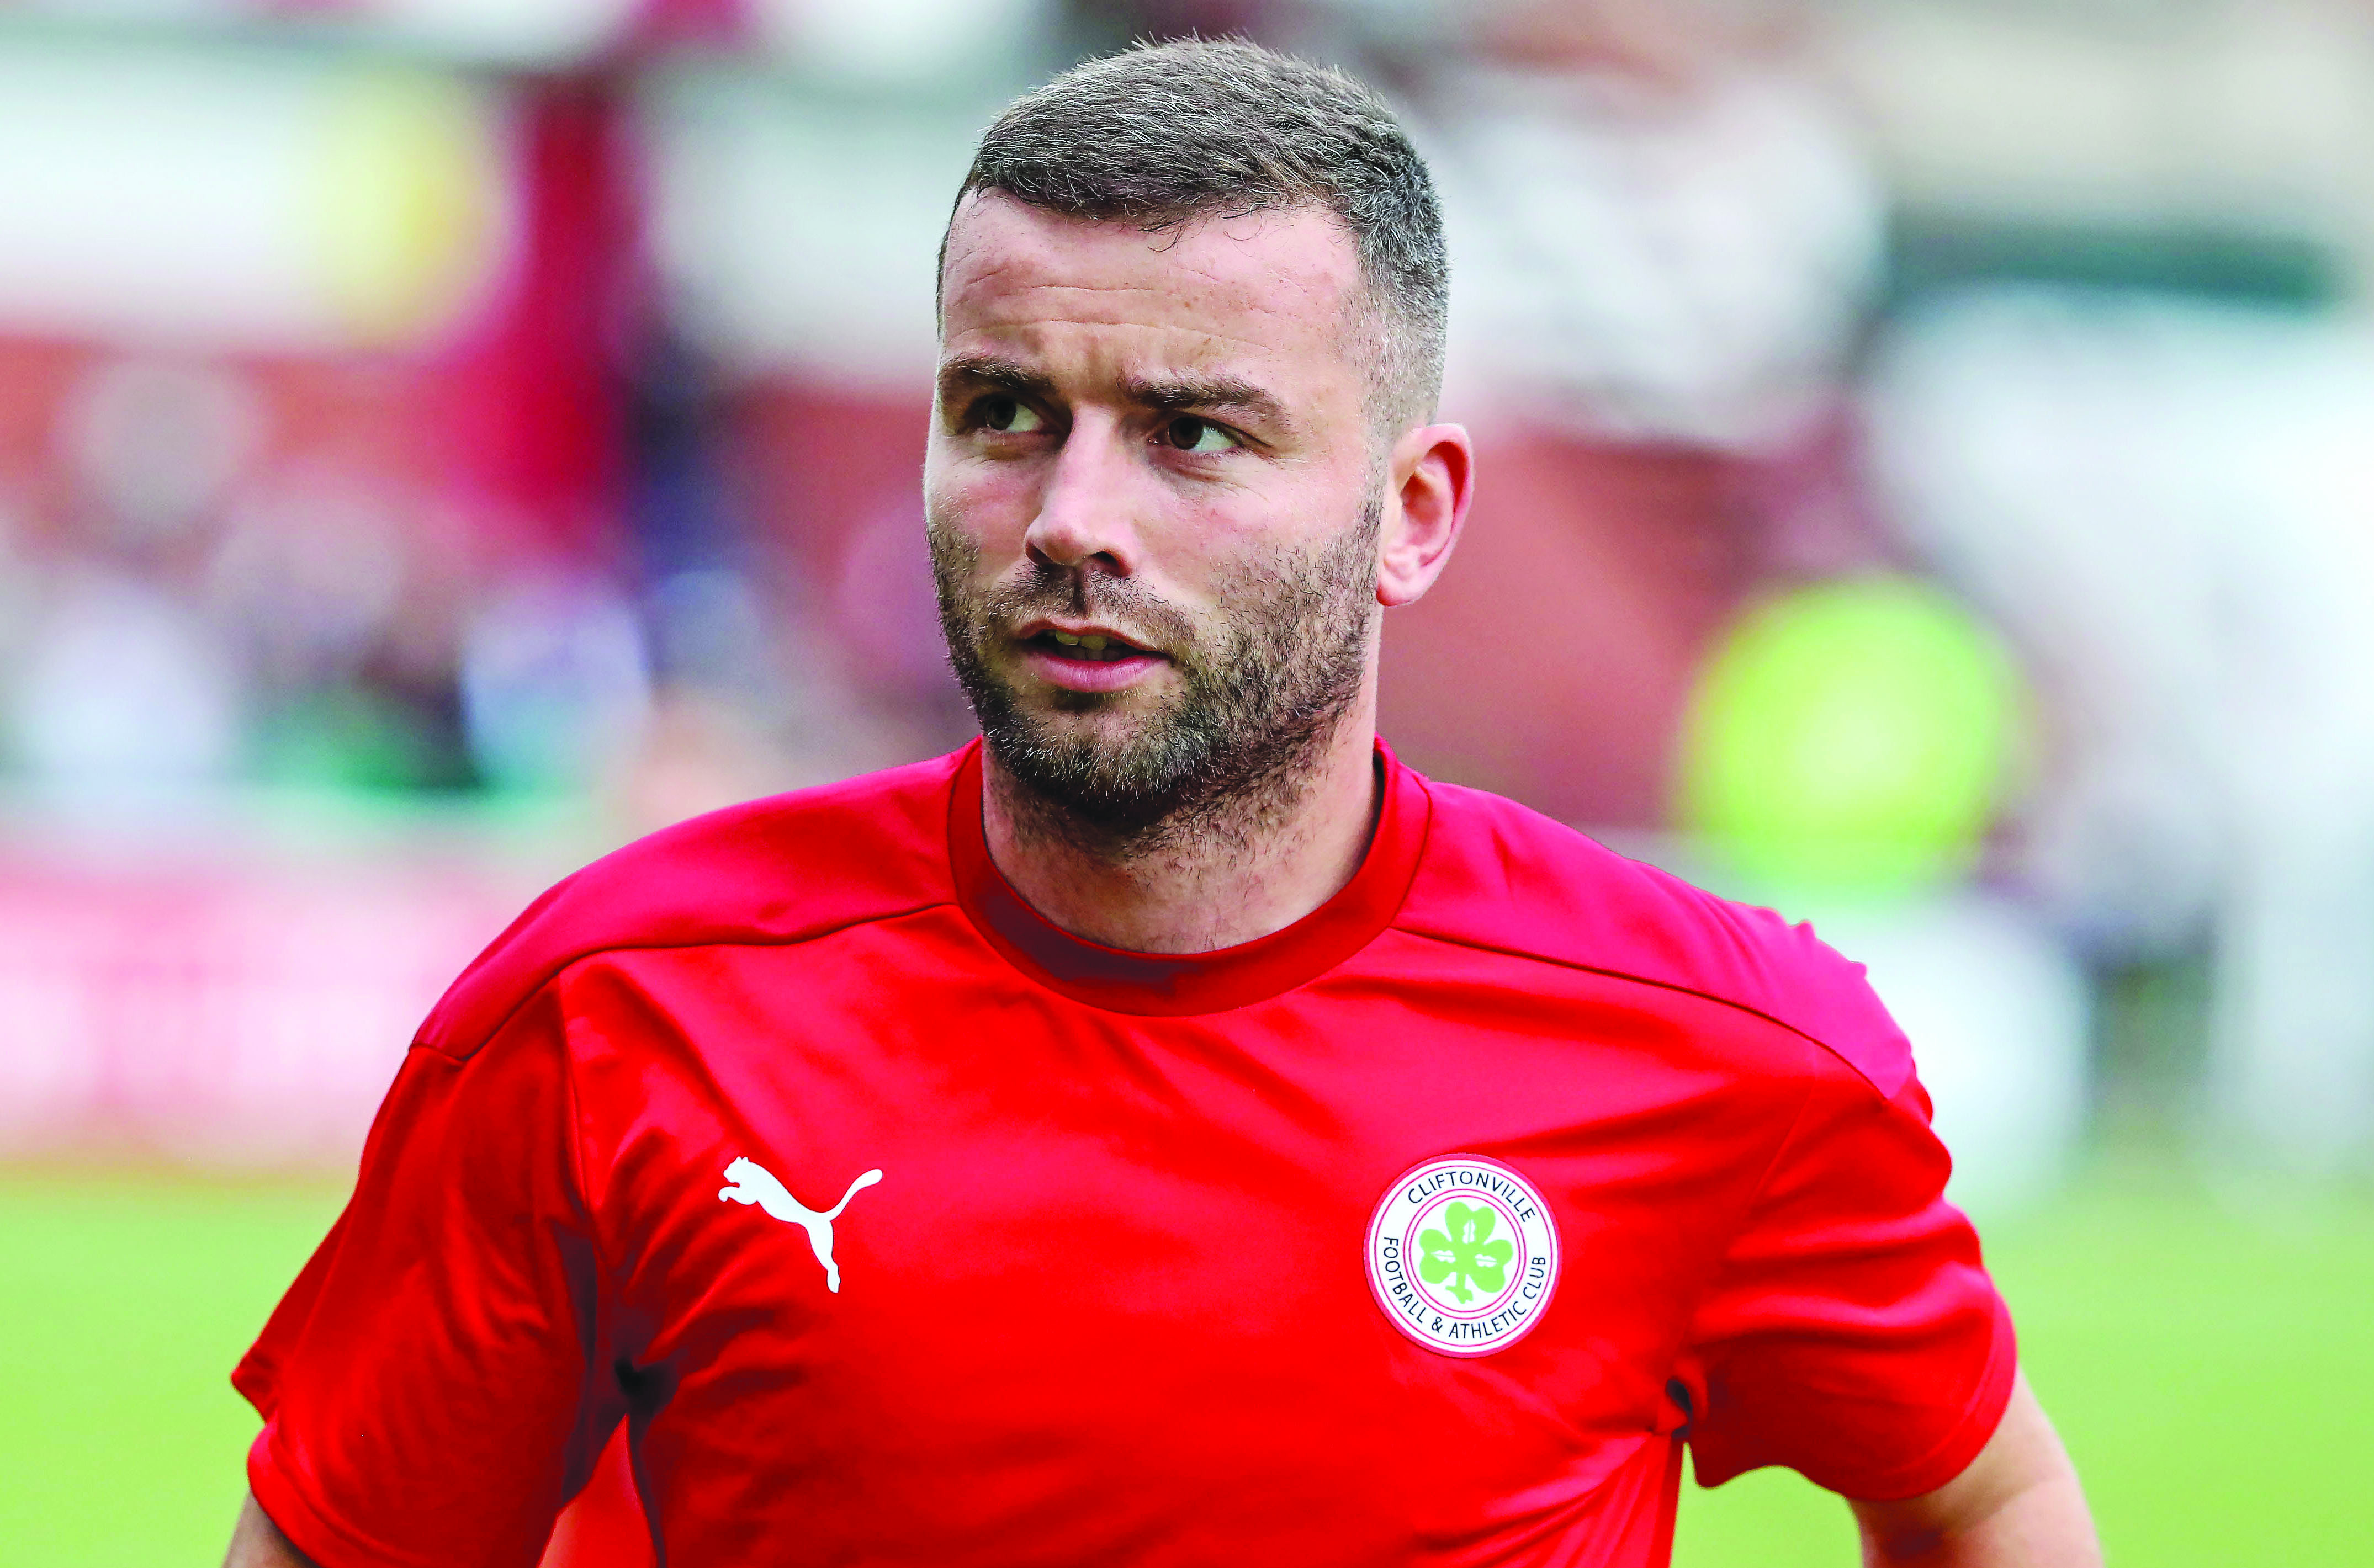 Colin Coates is a veteran of countless North Belfast derbies, but could start for Cliftonville for the first time against his old club, Crusdaers on Saturday